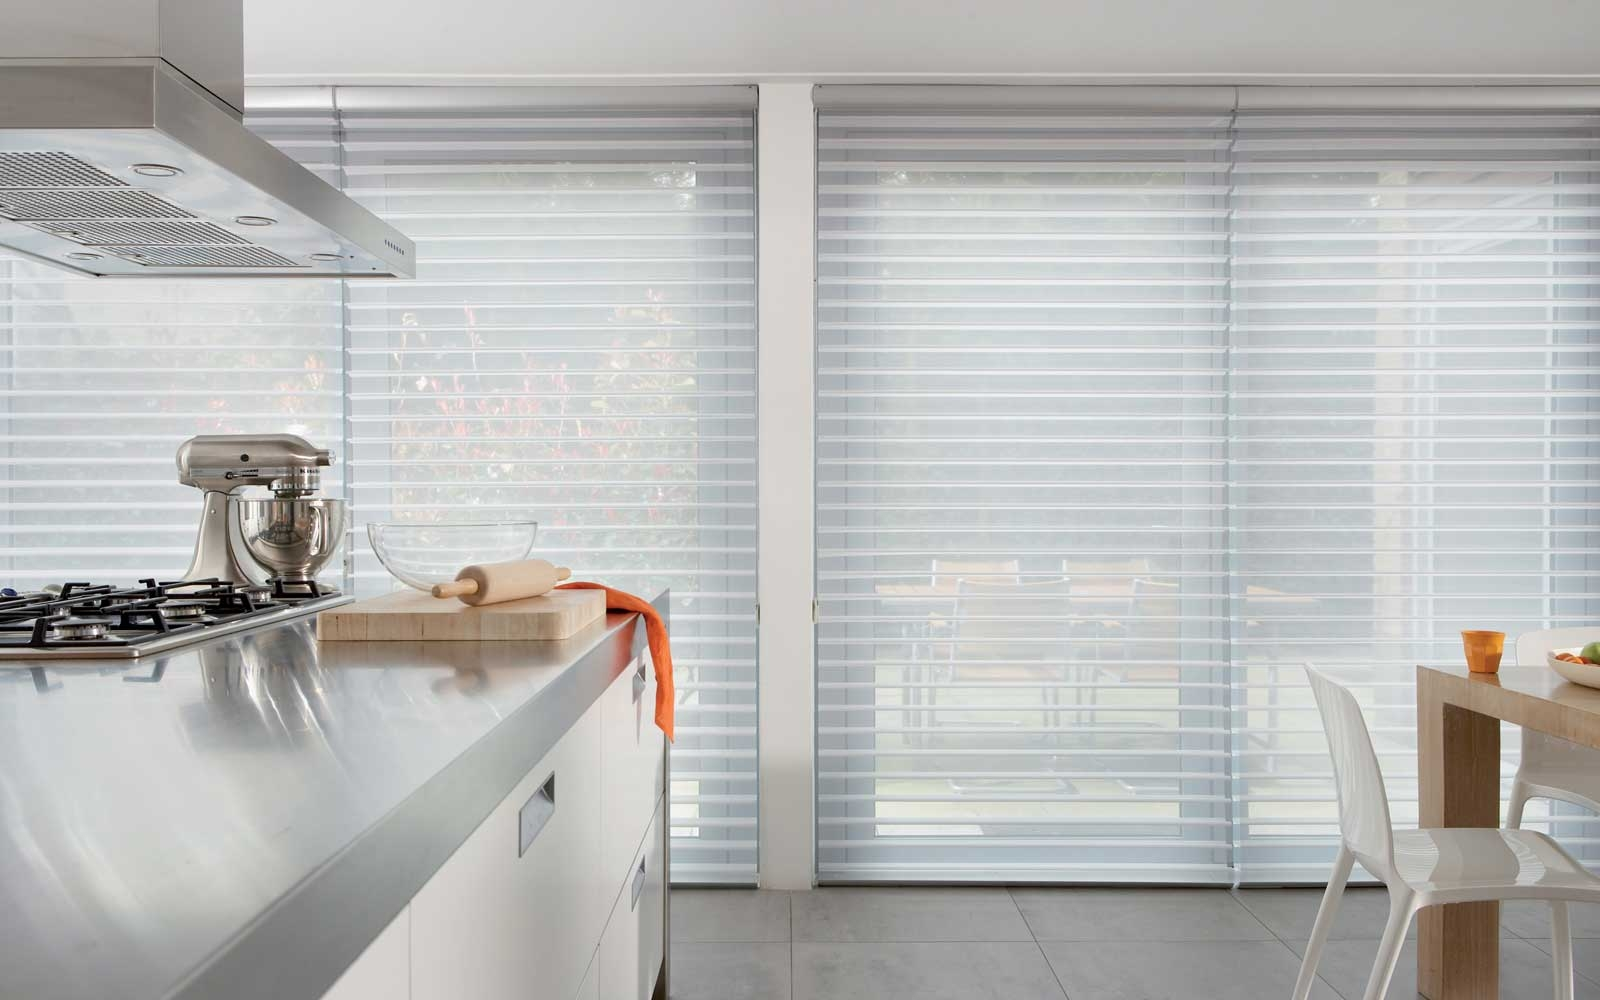 Voile Blinds Surrey Blinds Shutters Regarding Voile Blinds (View 2 of 15)